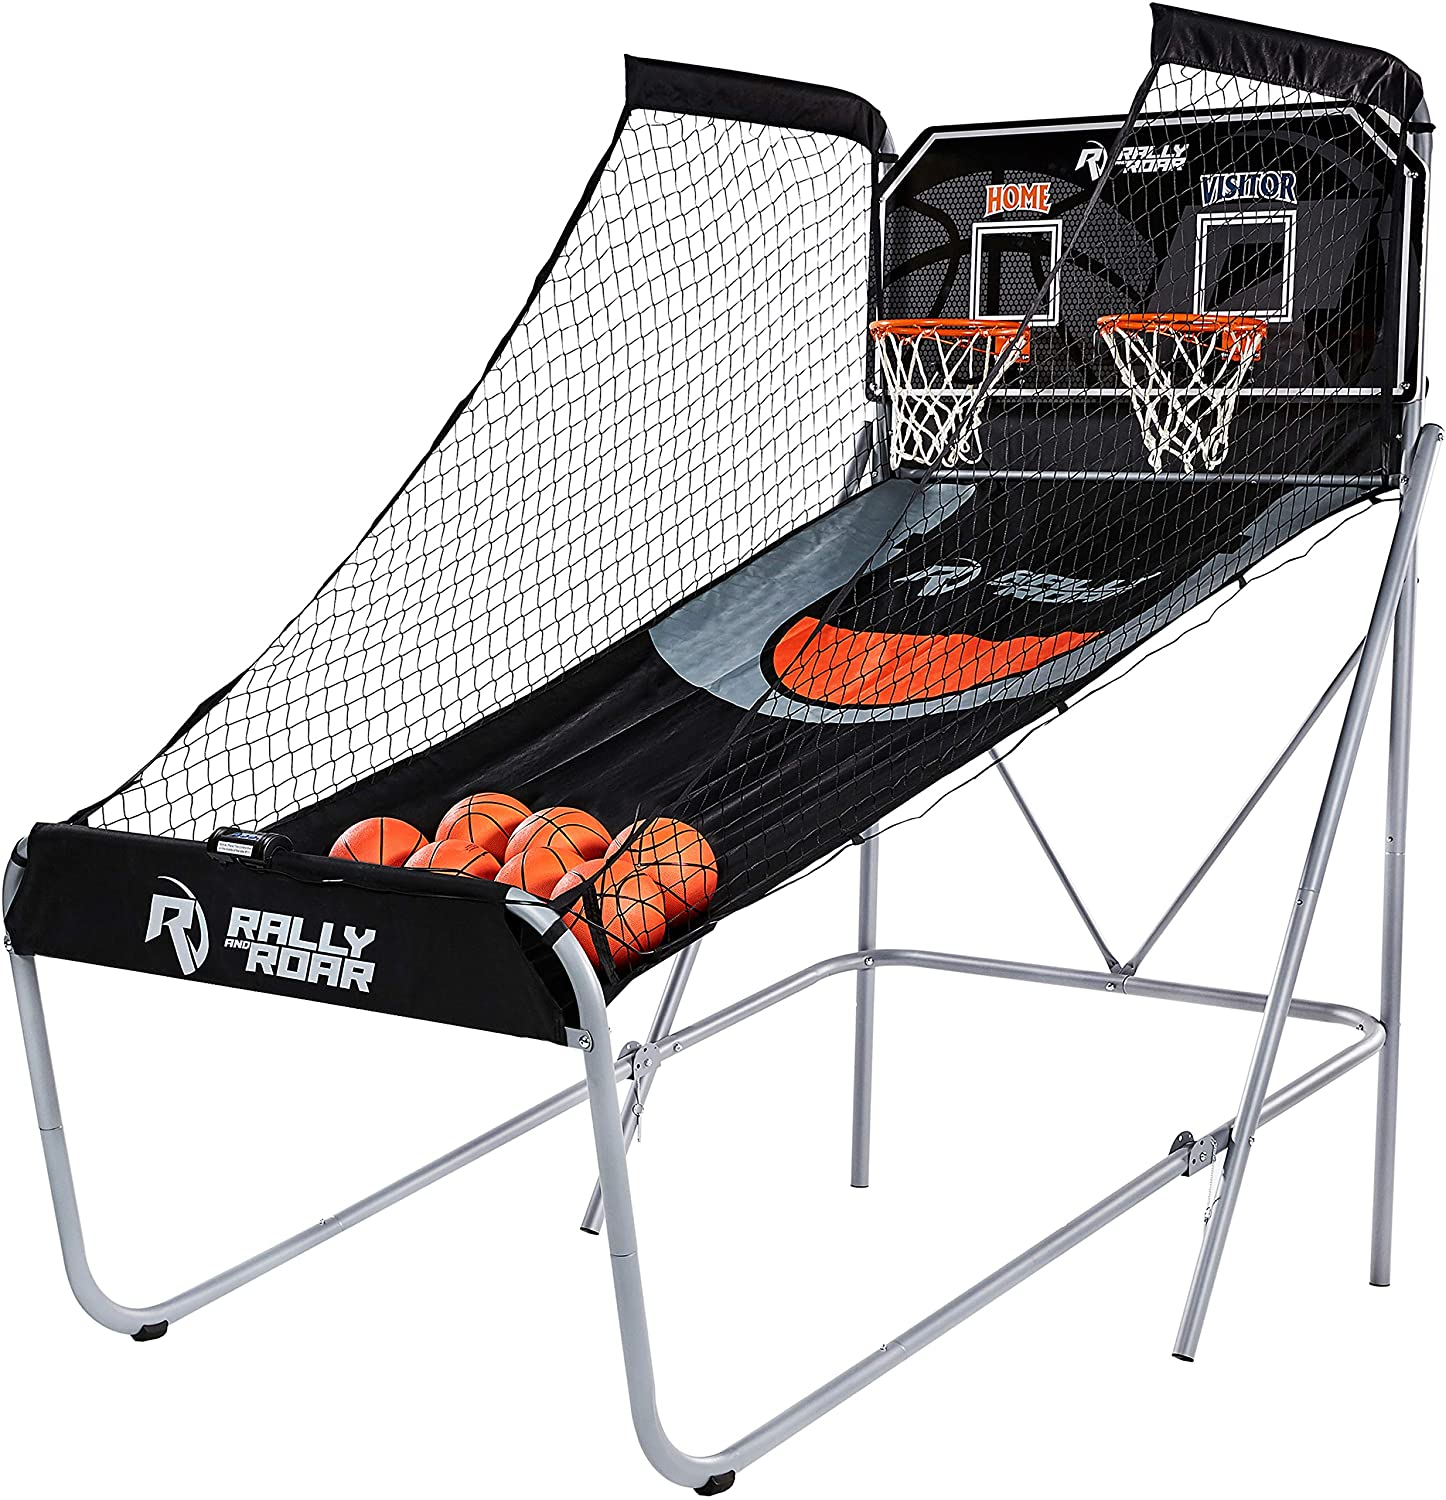 Rally and Roar Folding Indoor Arcade Basketball Game, 2 Hoops, LED Scoreboard, 7 Balls and Pump